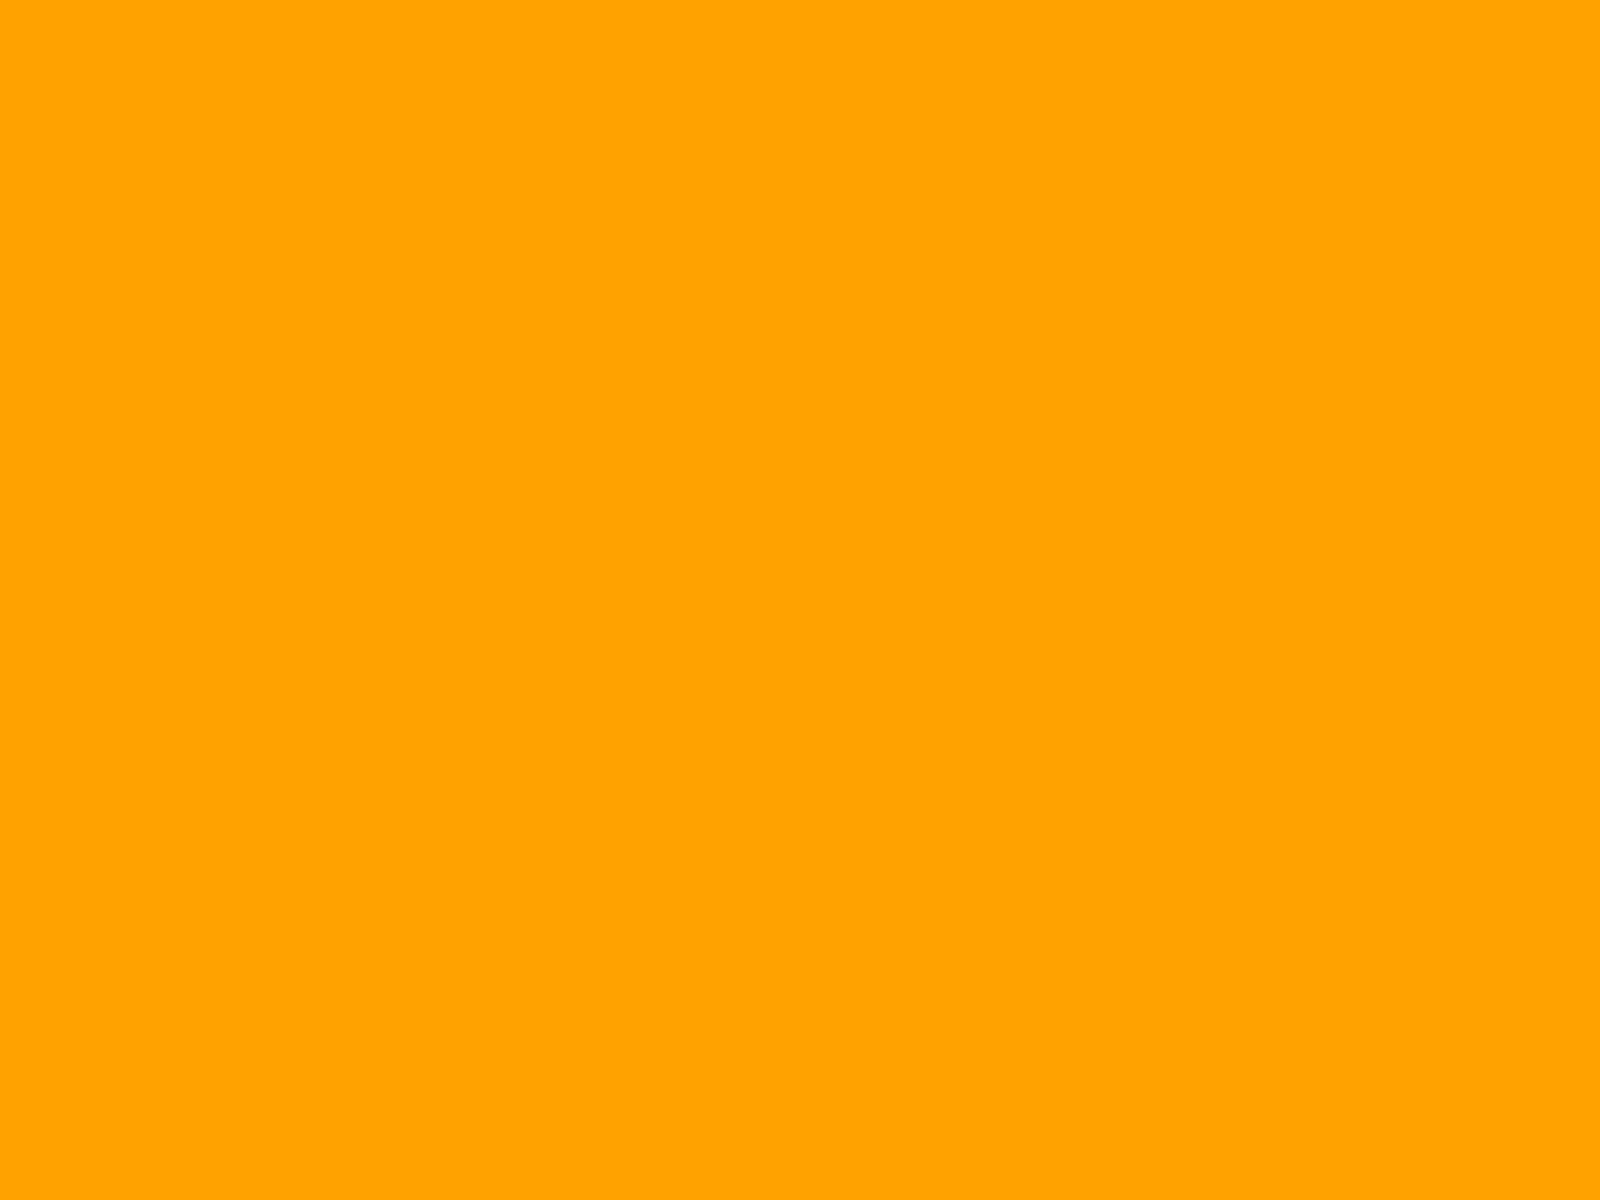 1600x1200 Orange Peel Solid Color Background